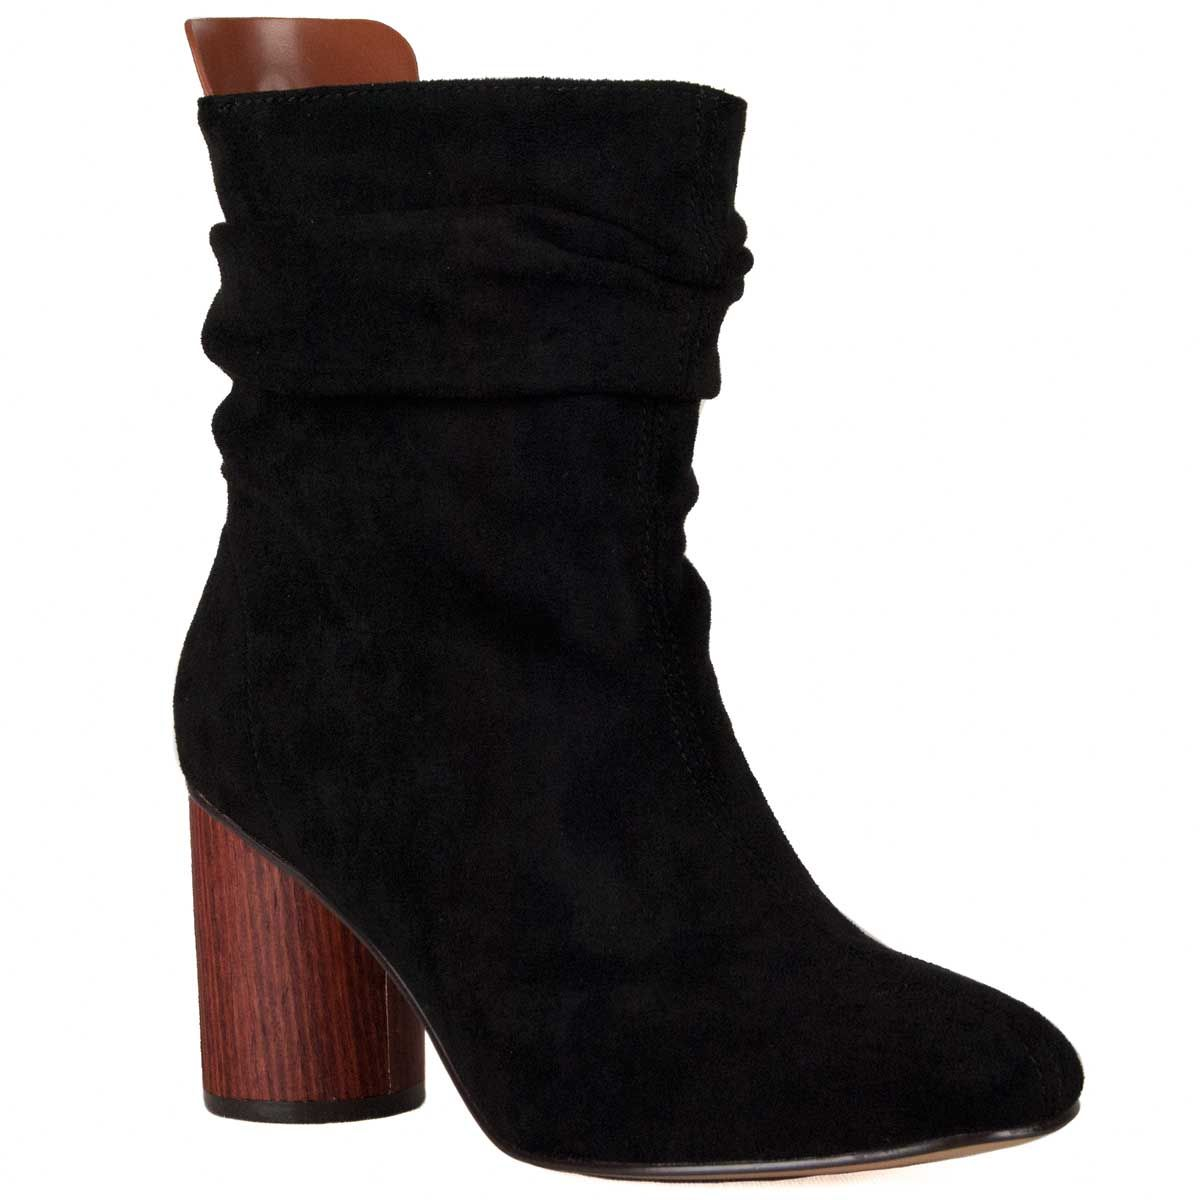 Montevita Ruched Heeled Boot in Black